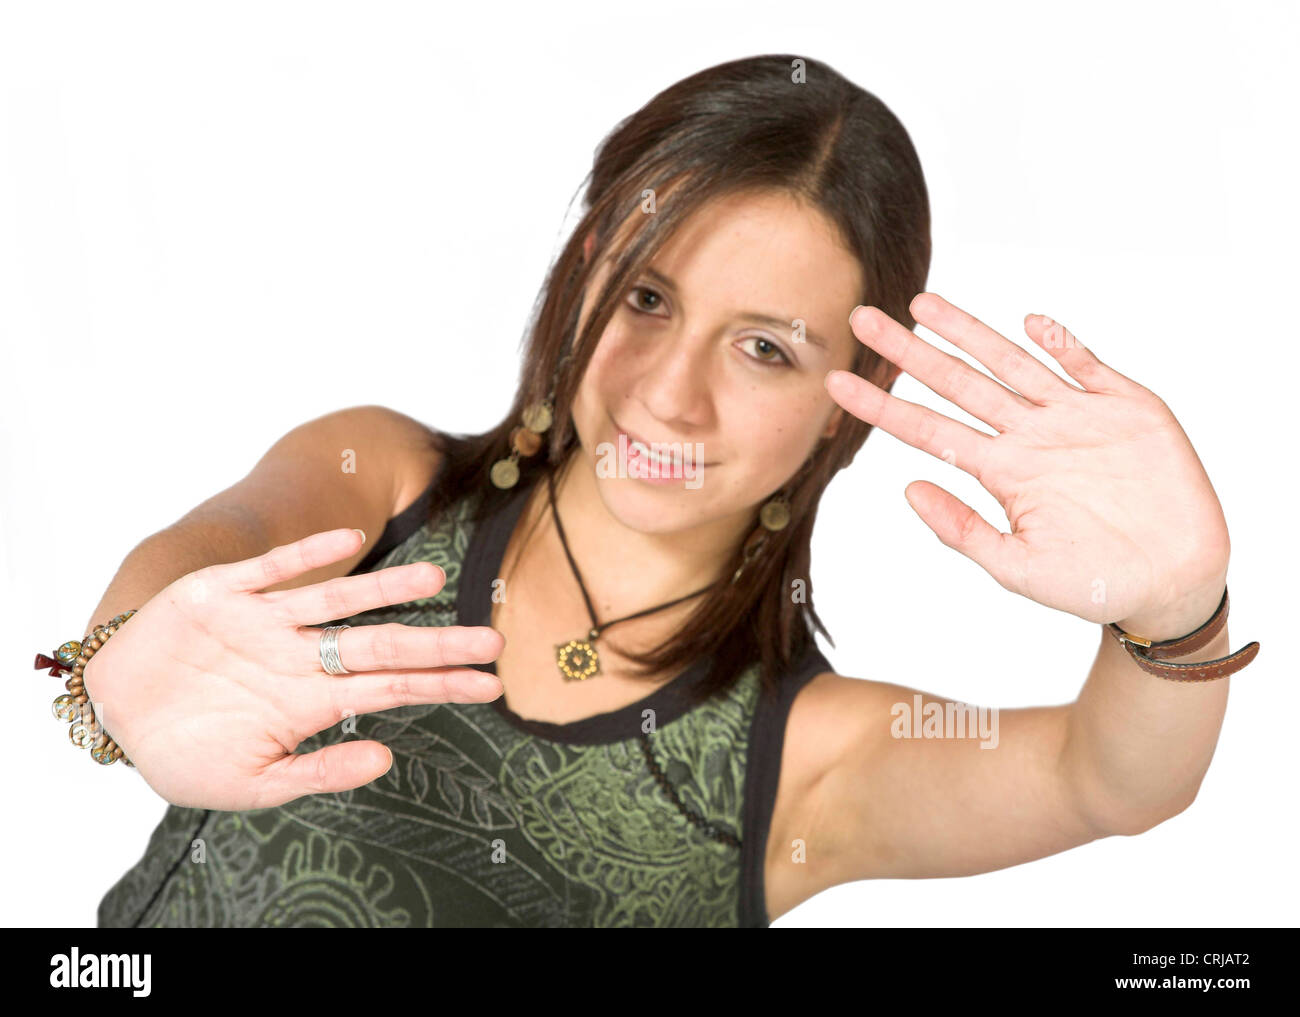 young girl pressing the palm of both hands against the invisible glass pane between her and the camera - Stock Image